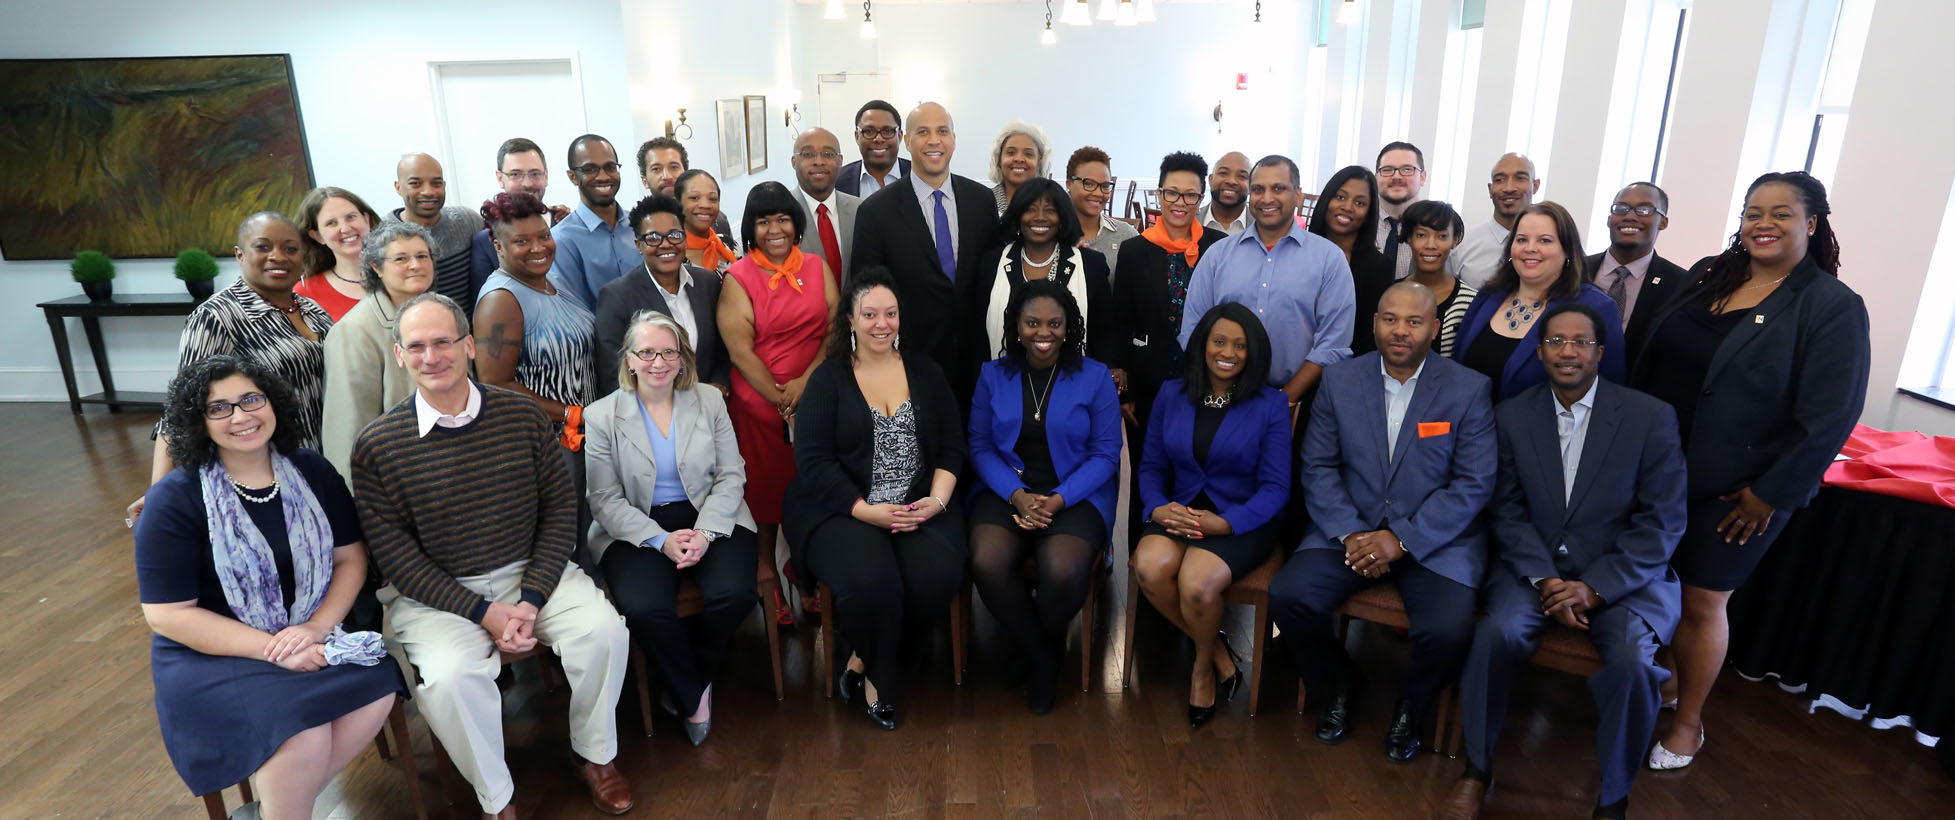 Leadership Newark's 21st Anniversary Celebration:  April 30, 2019